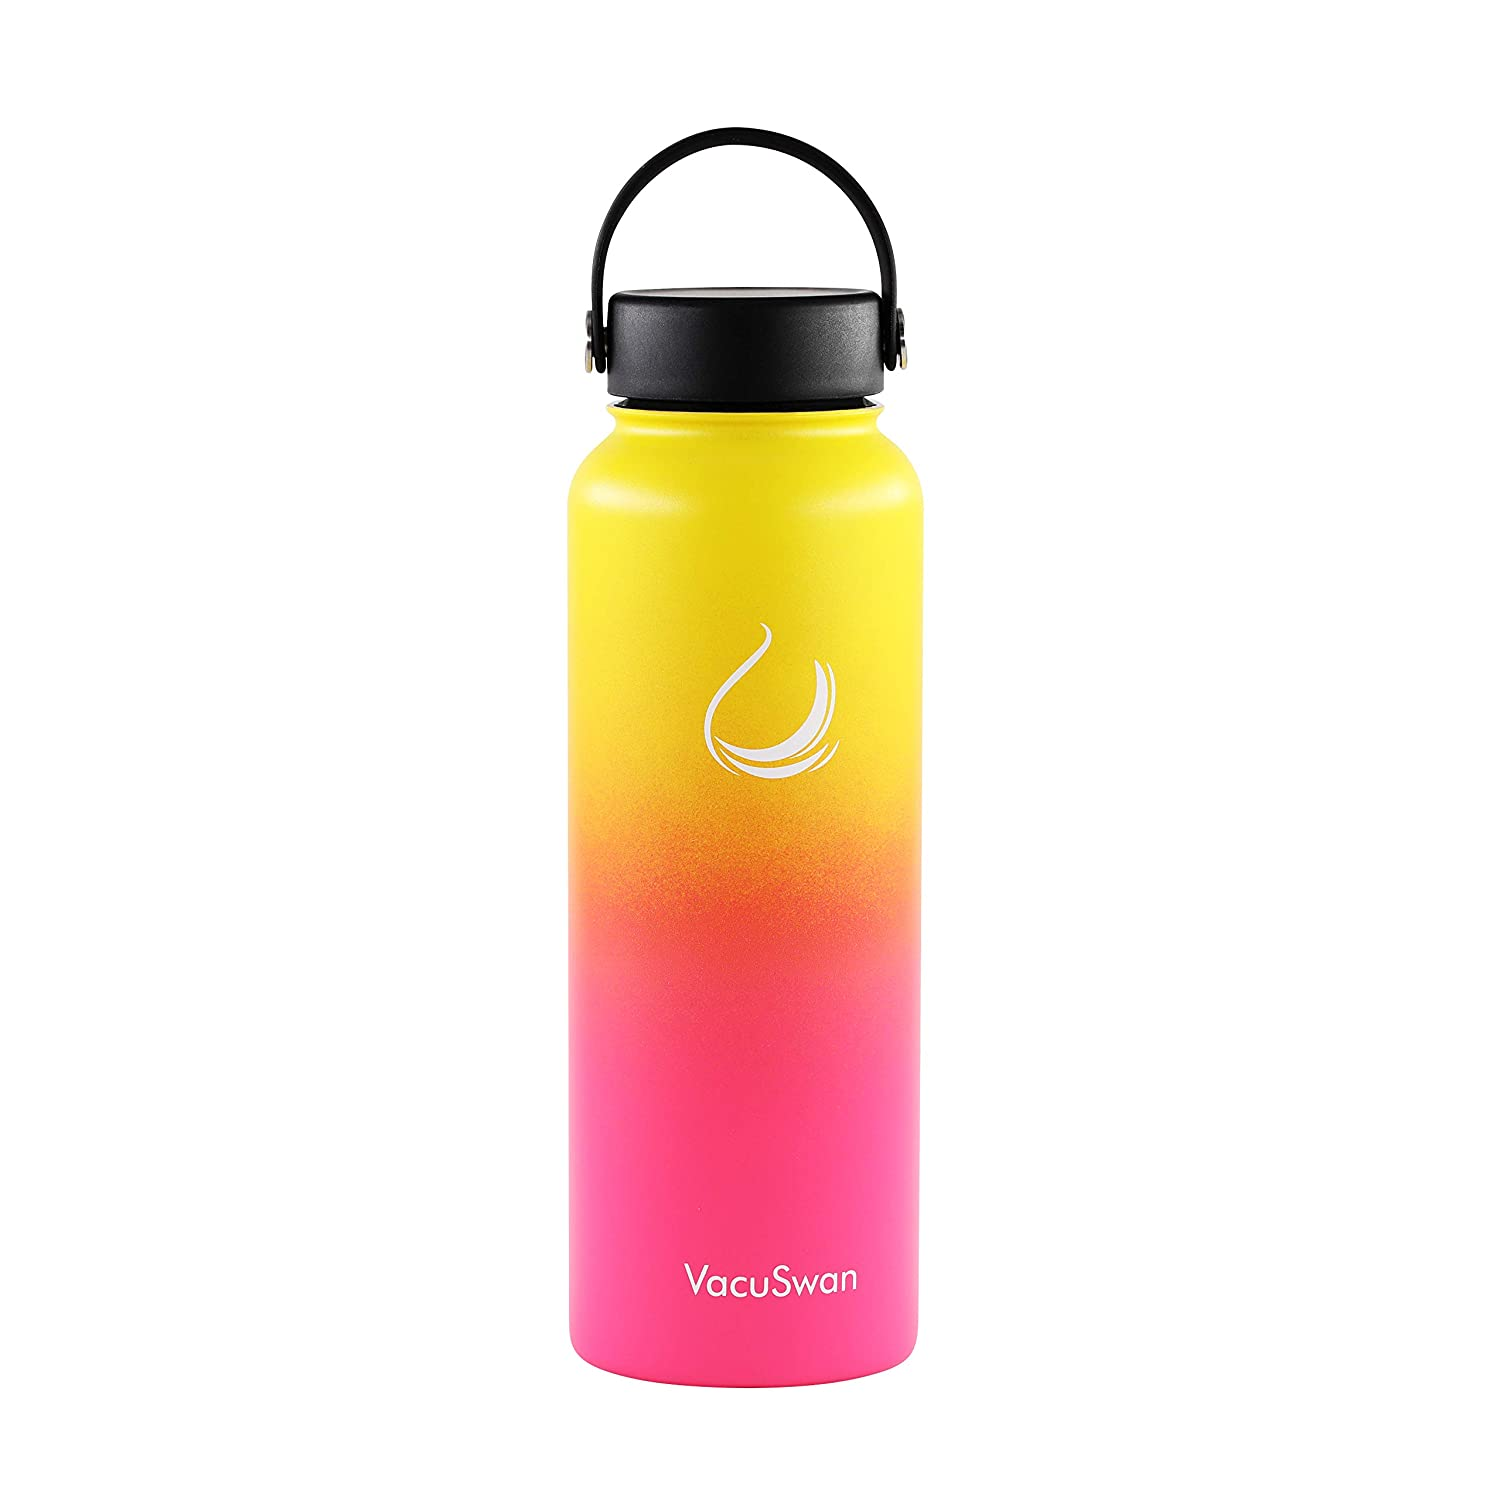 VacuSwan Double Wall Vacuum Insulated Stainless Steel Color Changing Sports Water Bottle Wide Mouth with BPA Free Straw Lid and Flex Cap